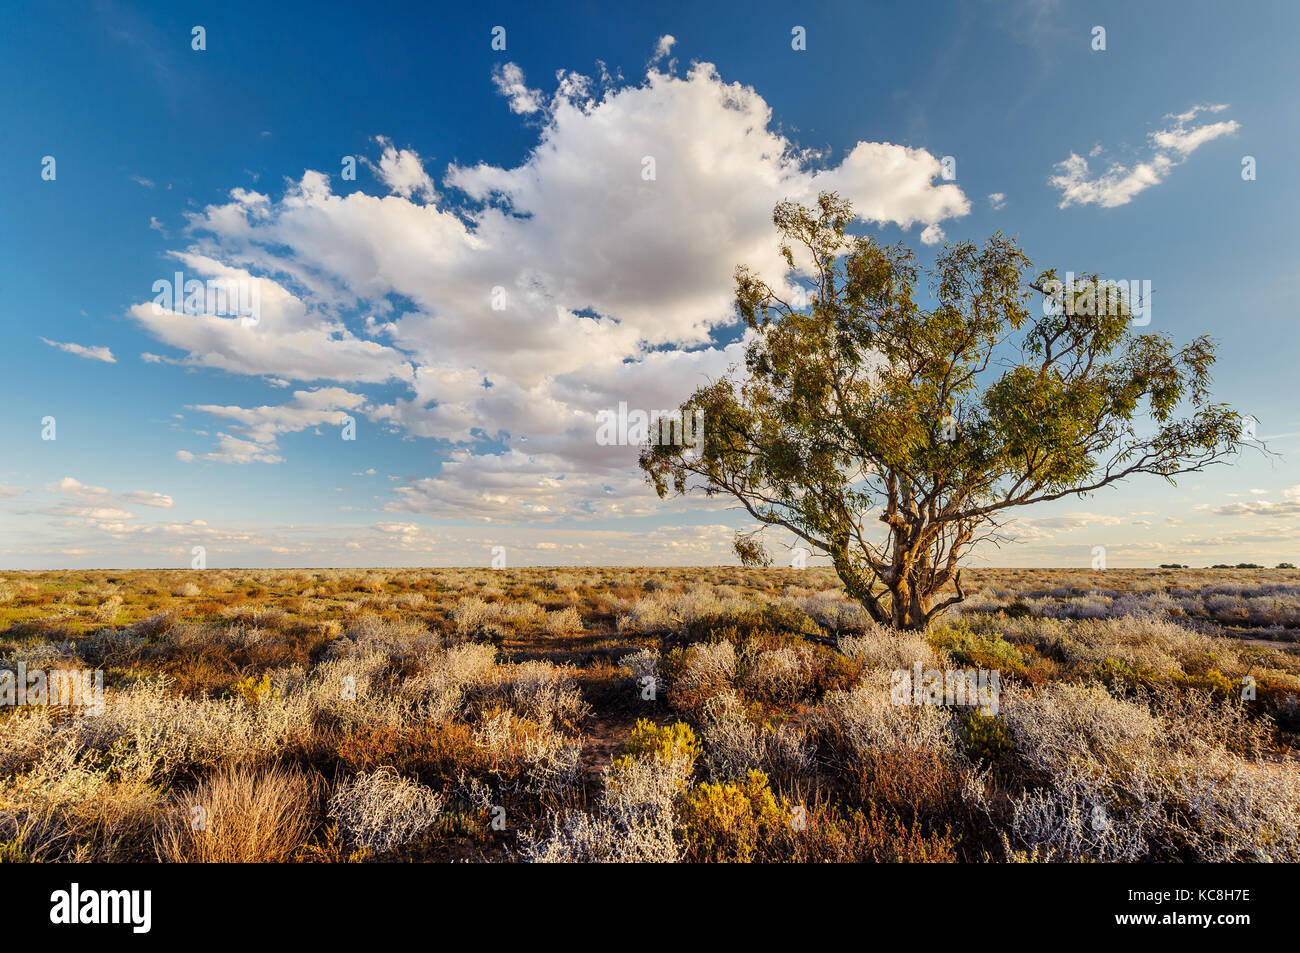 Lonely tree in the remote outback of Willandra Plains. - Stock Image